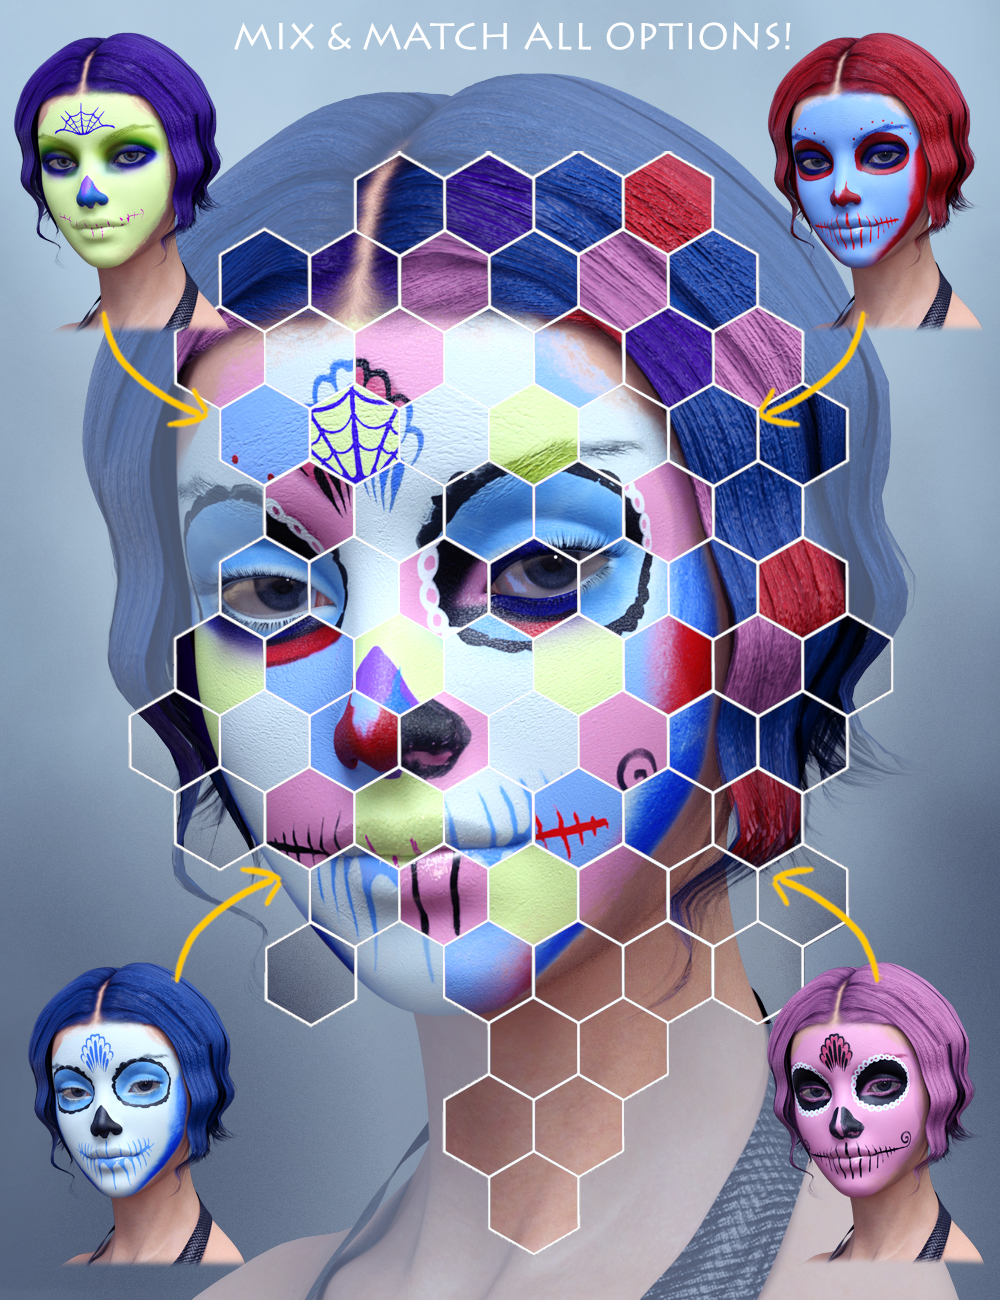 Sugar Skull Make-up for Genesis 3 Female by: ForbiddenWhispers, 3D Models by Daz 3D